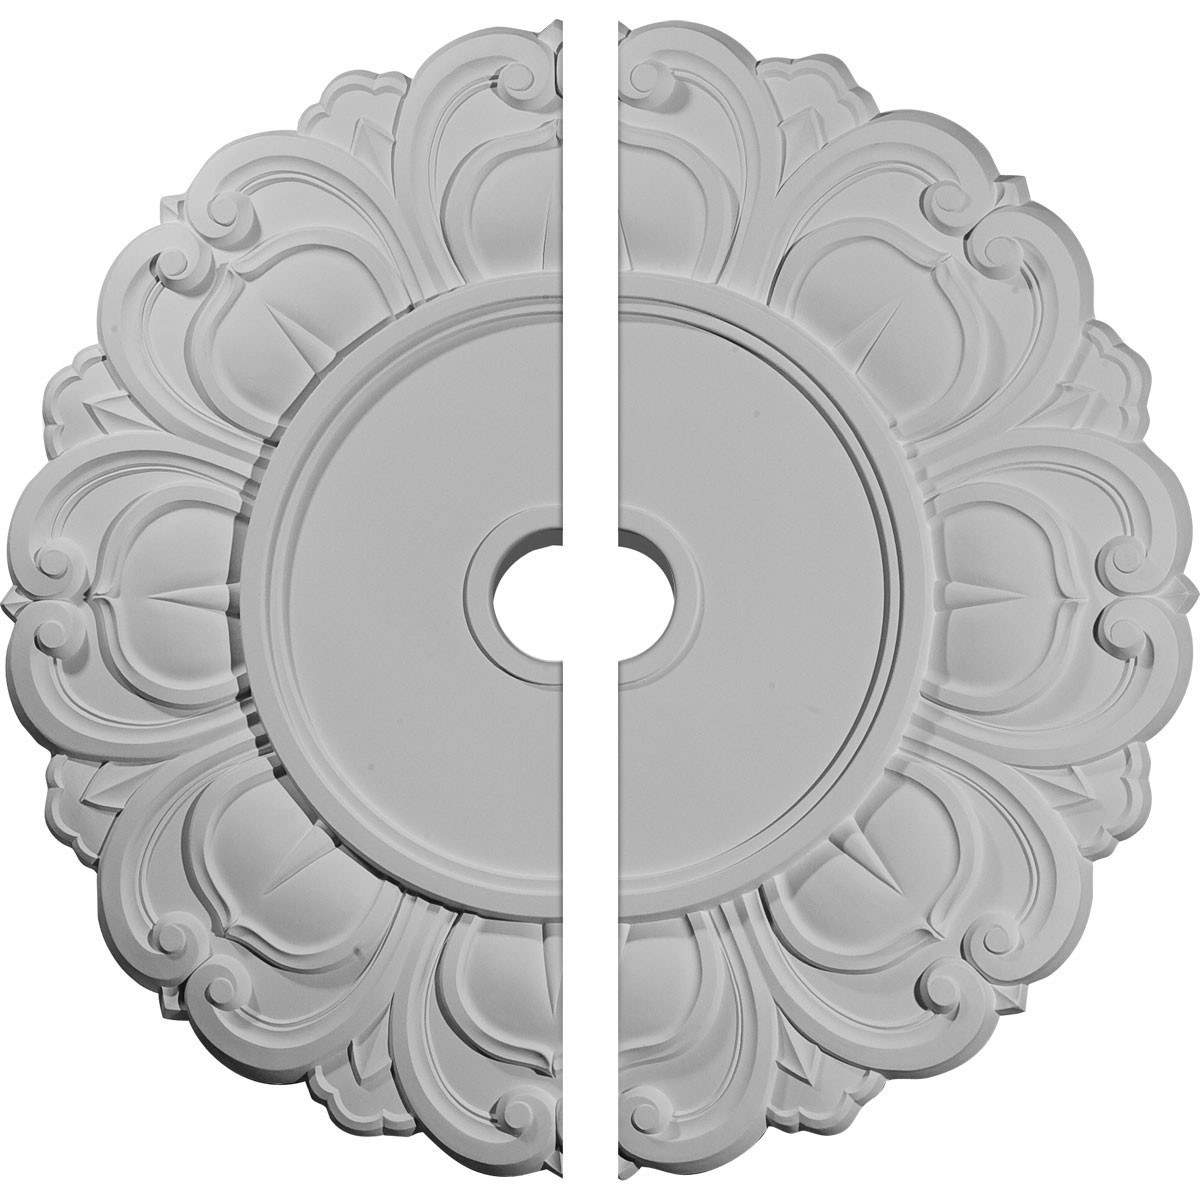 """EM-CM32AN2 - 32 1/4""""OD x 3 5/8""""ID x 1 1/8""""P Angel Ceiling Medallion, Two Piece (Fits Canopies up to 15 3/4"""")"""